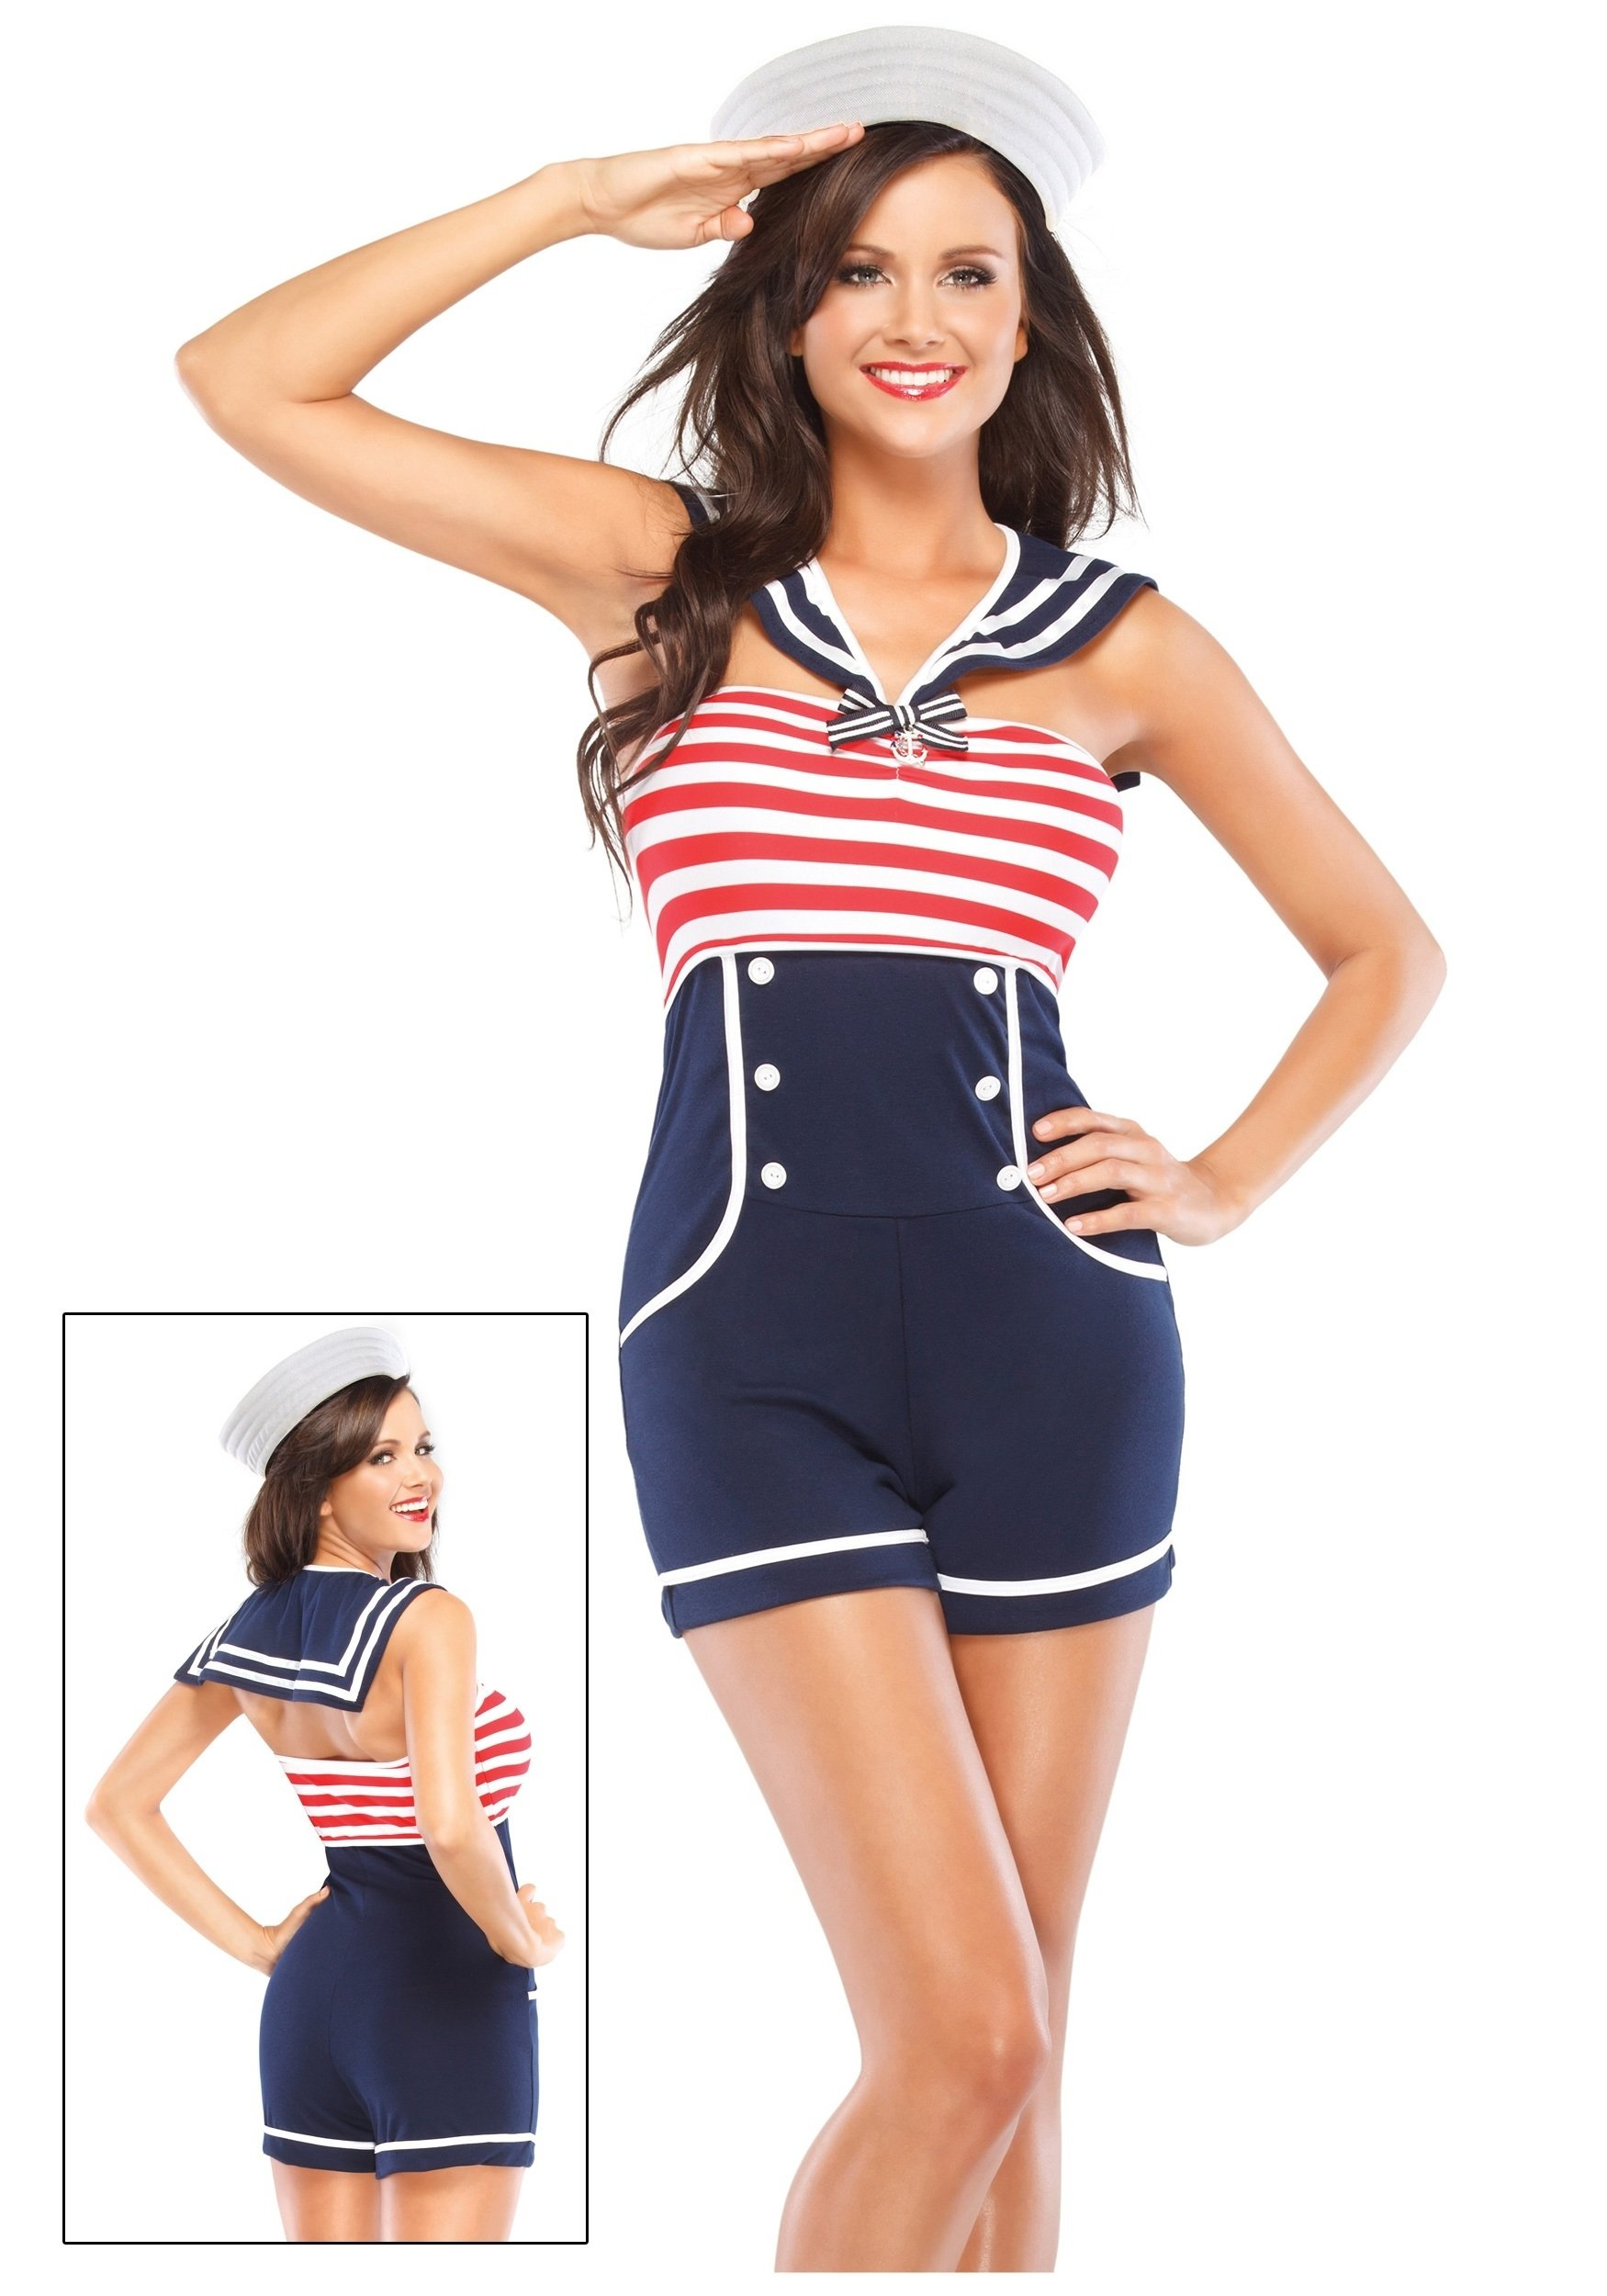 10 Nice Pin Up Girl Halloween Costume Ideas nautical pin up girl costume womens sexy sailor uniform costumes 2020